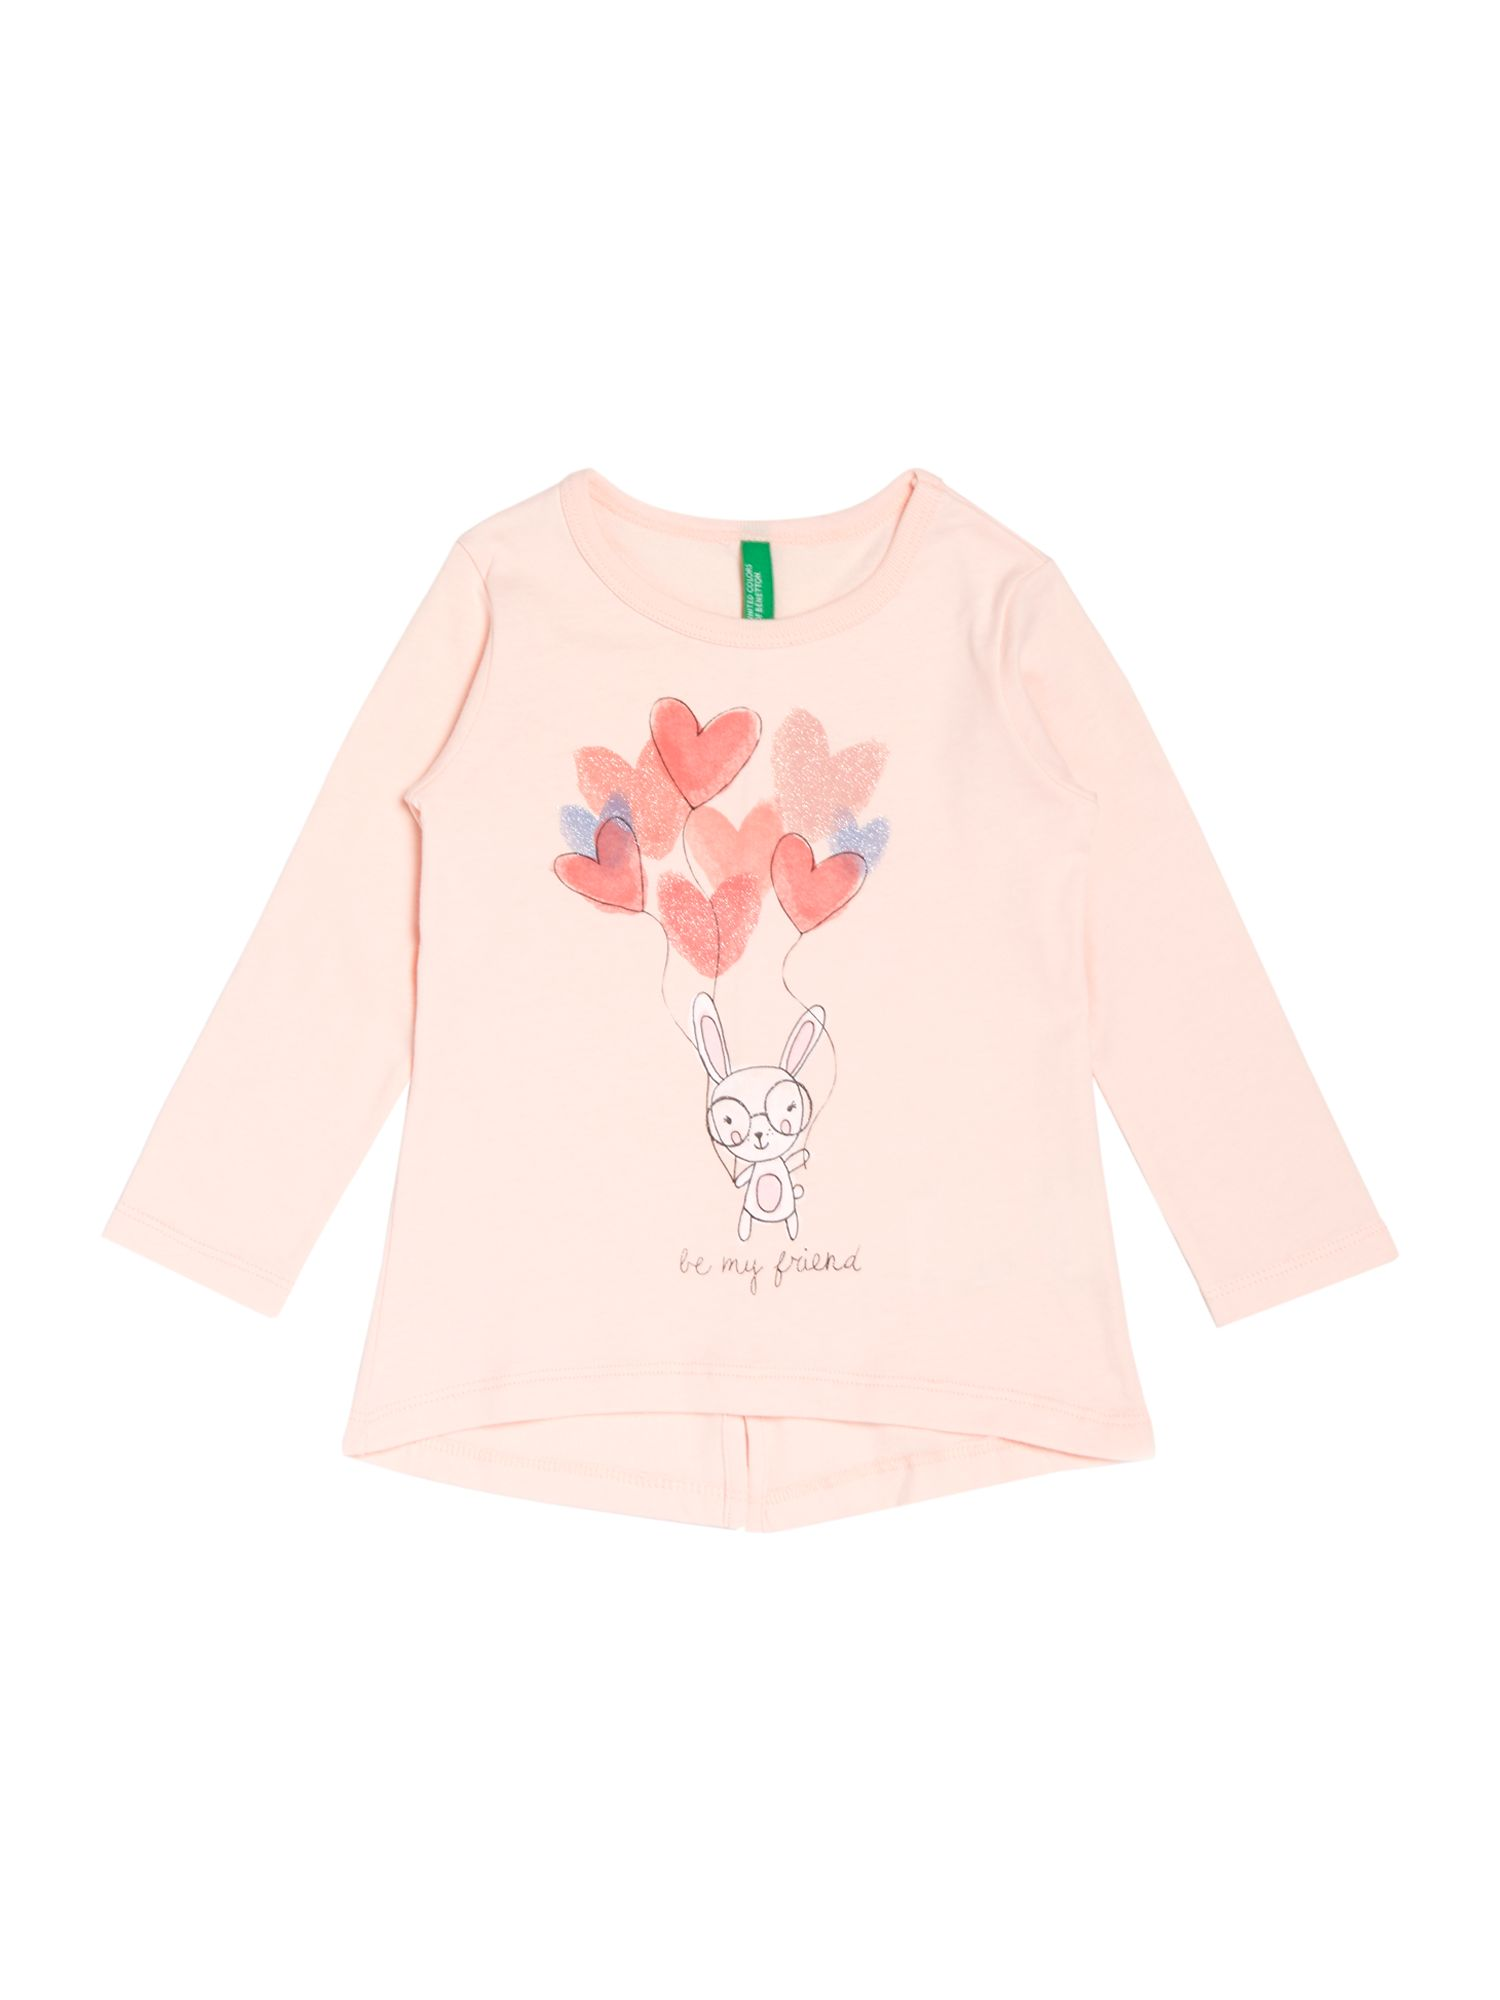 Girls glitter heart balloon graphic top